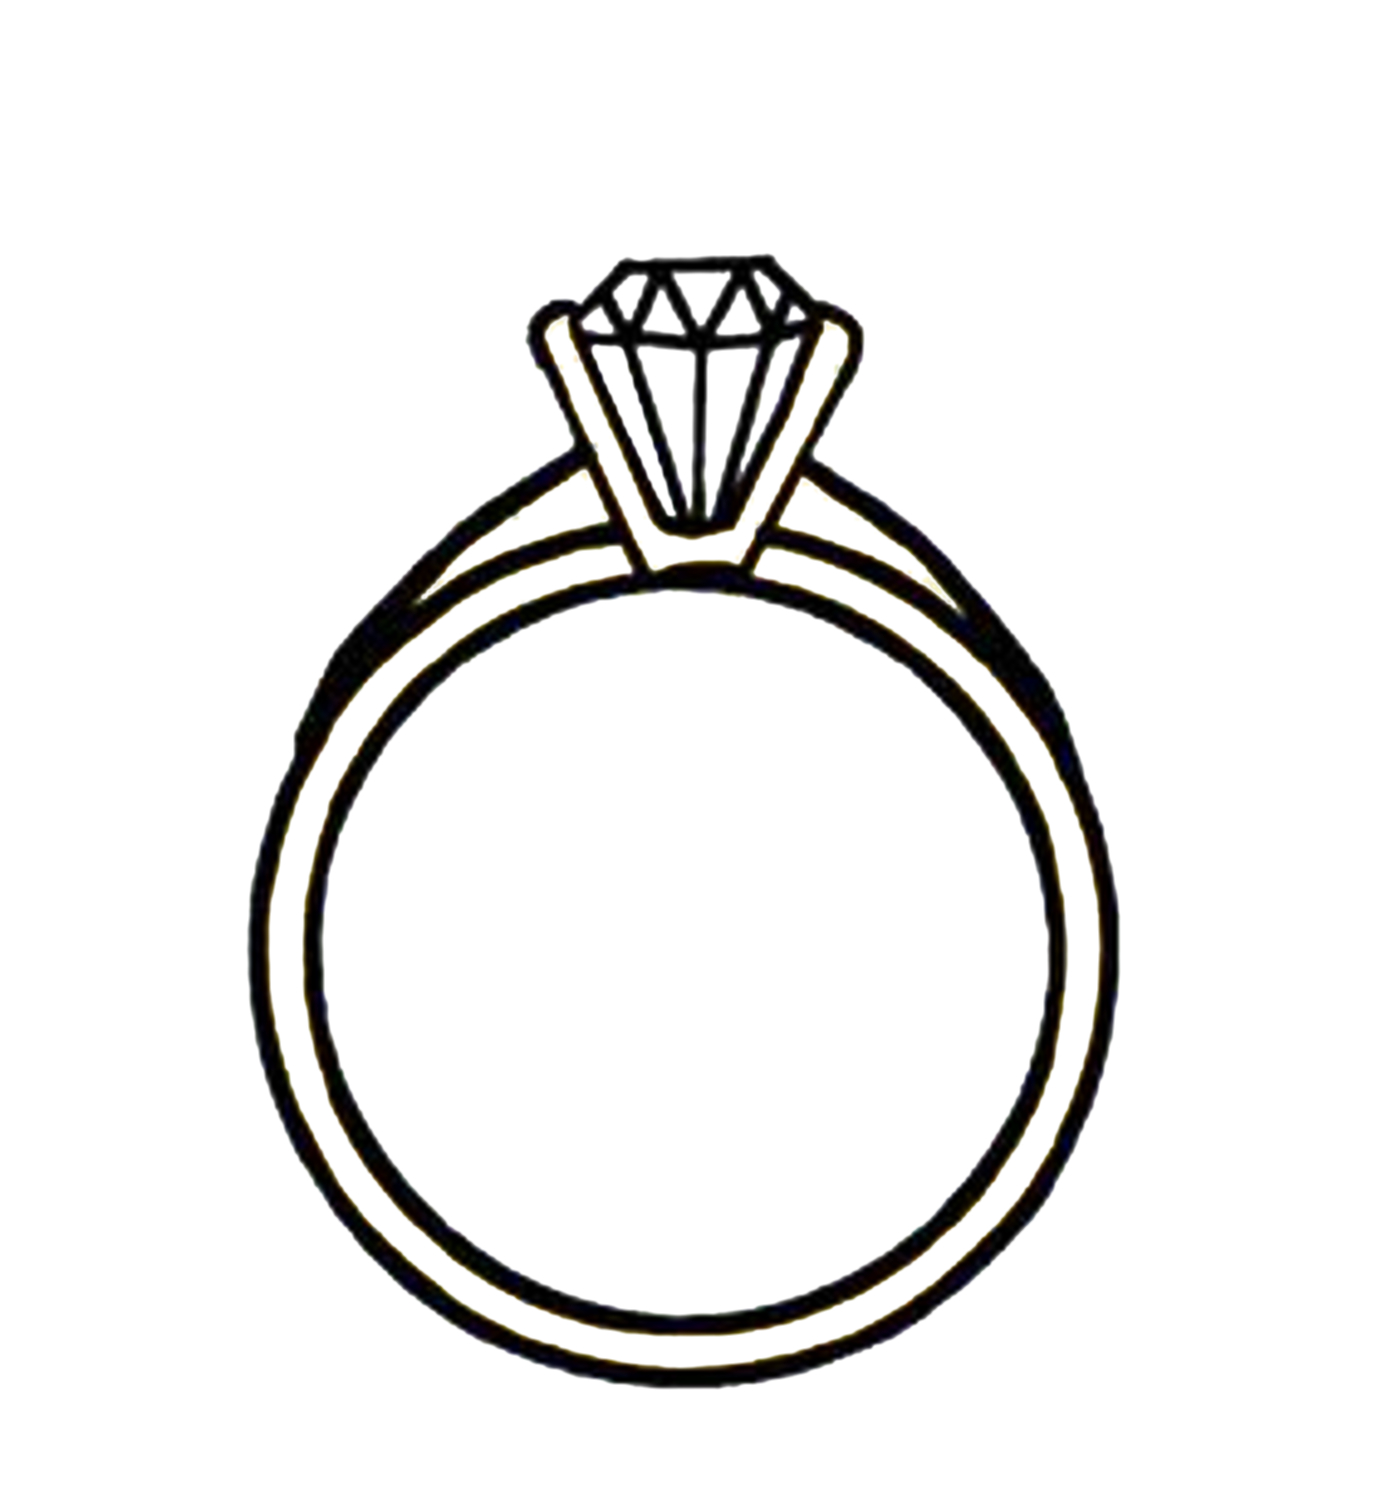 Diamond Clip Art Black And White.